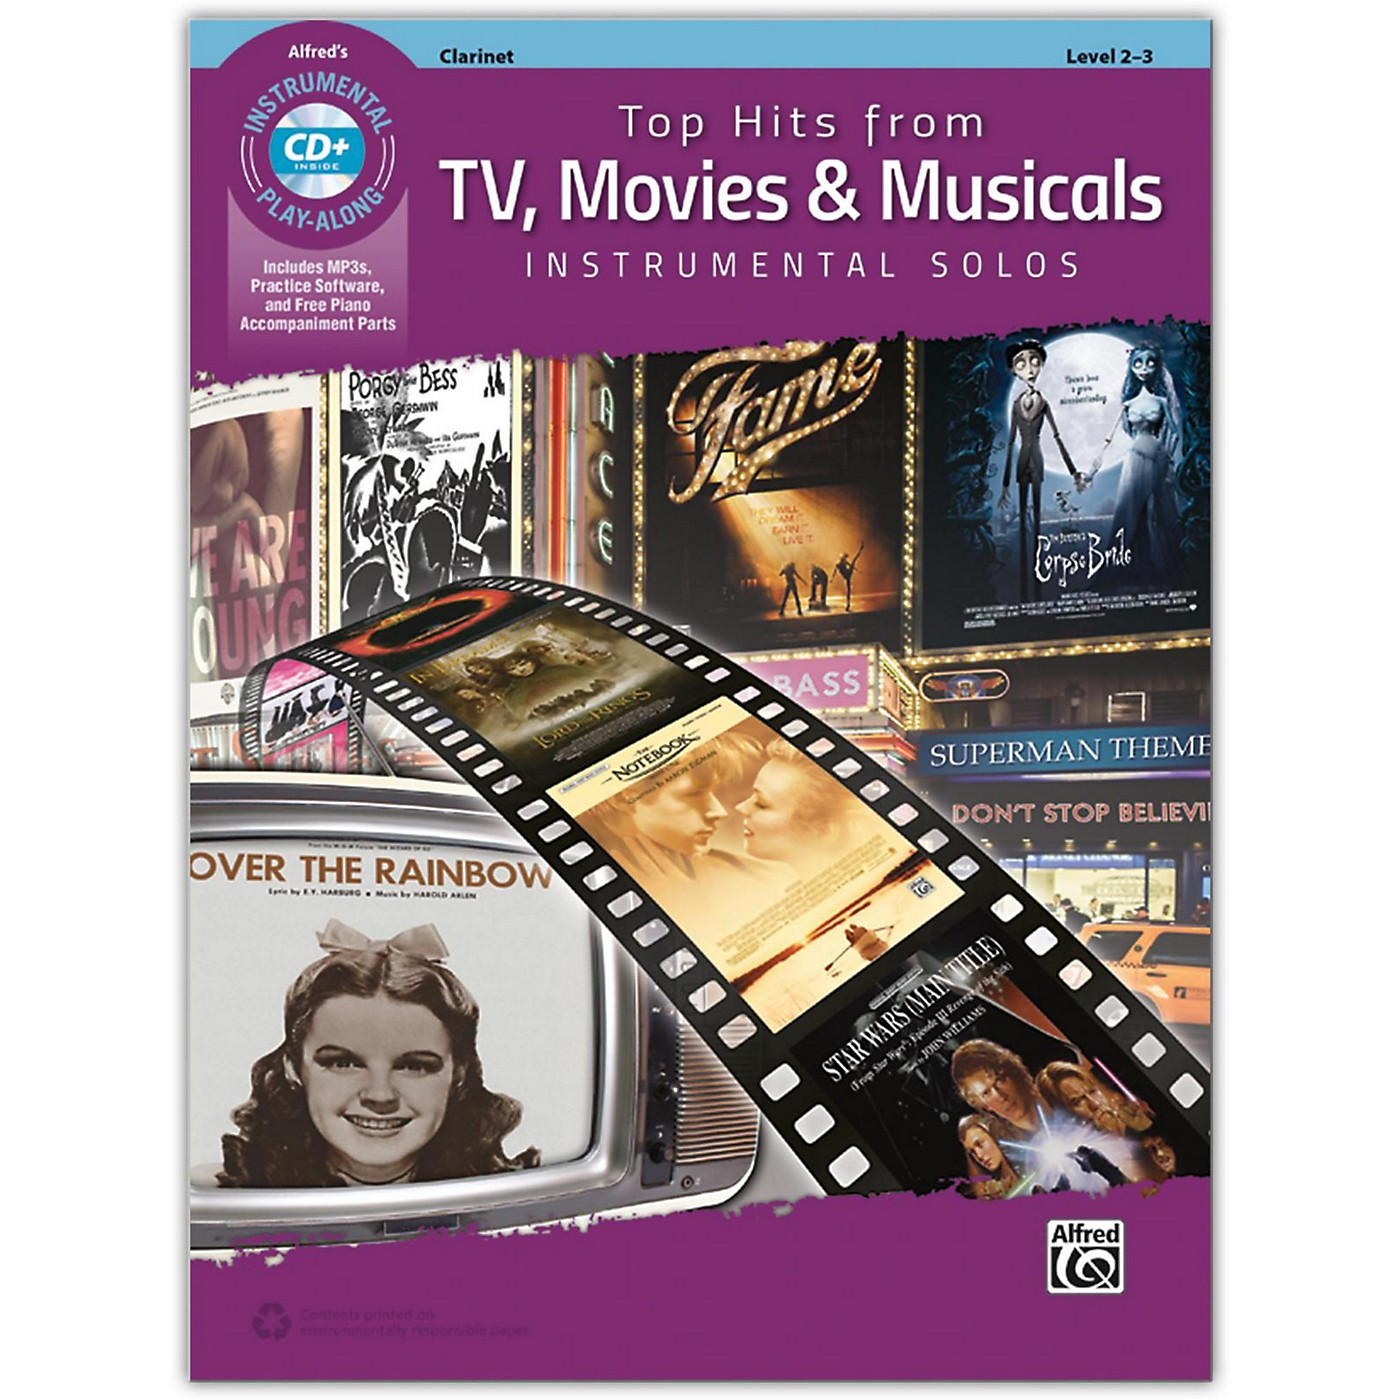 Alfred Top Hits from TV, Movies & Musicals Instrumental Solos Clarinet Book & CD, Level 2-3 thumbnail